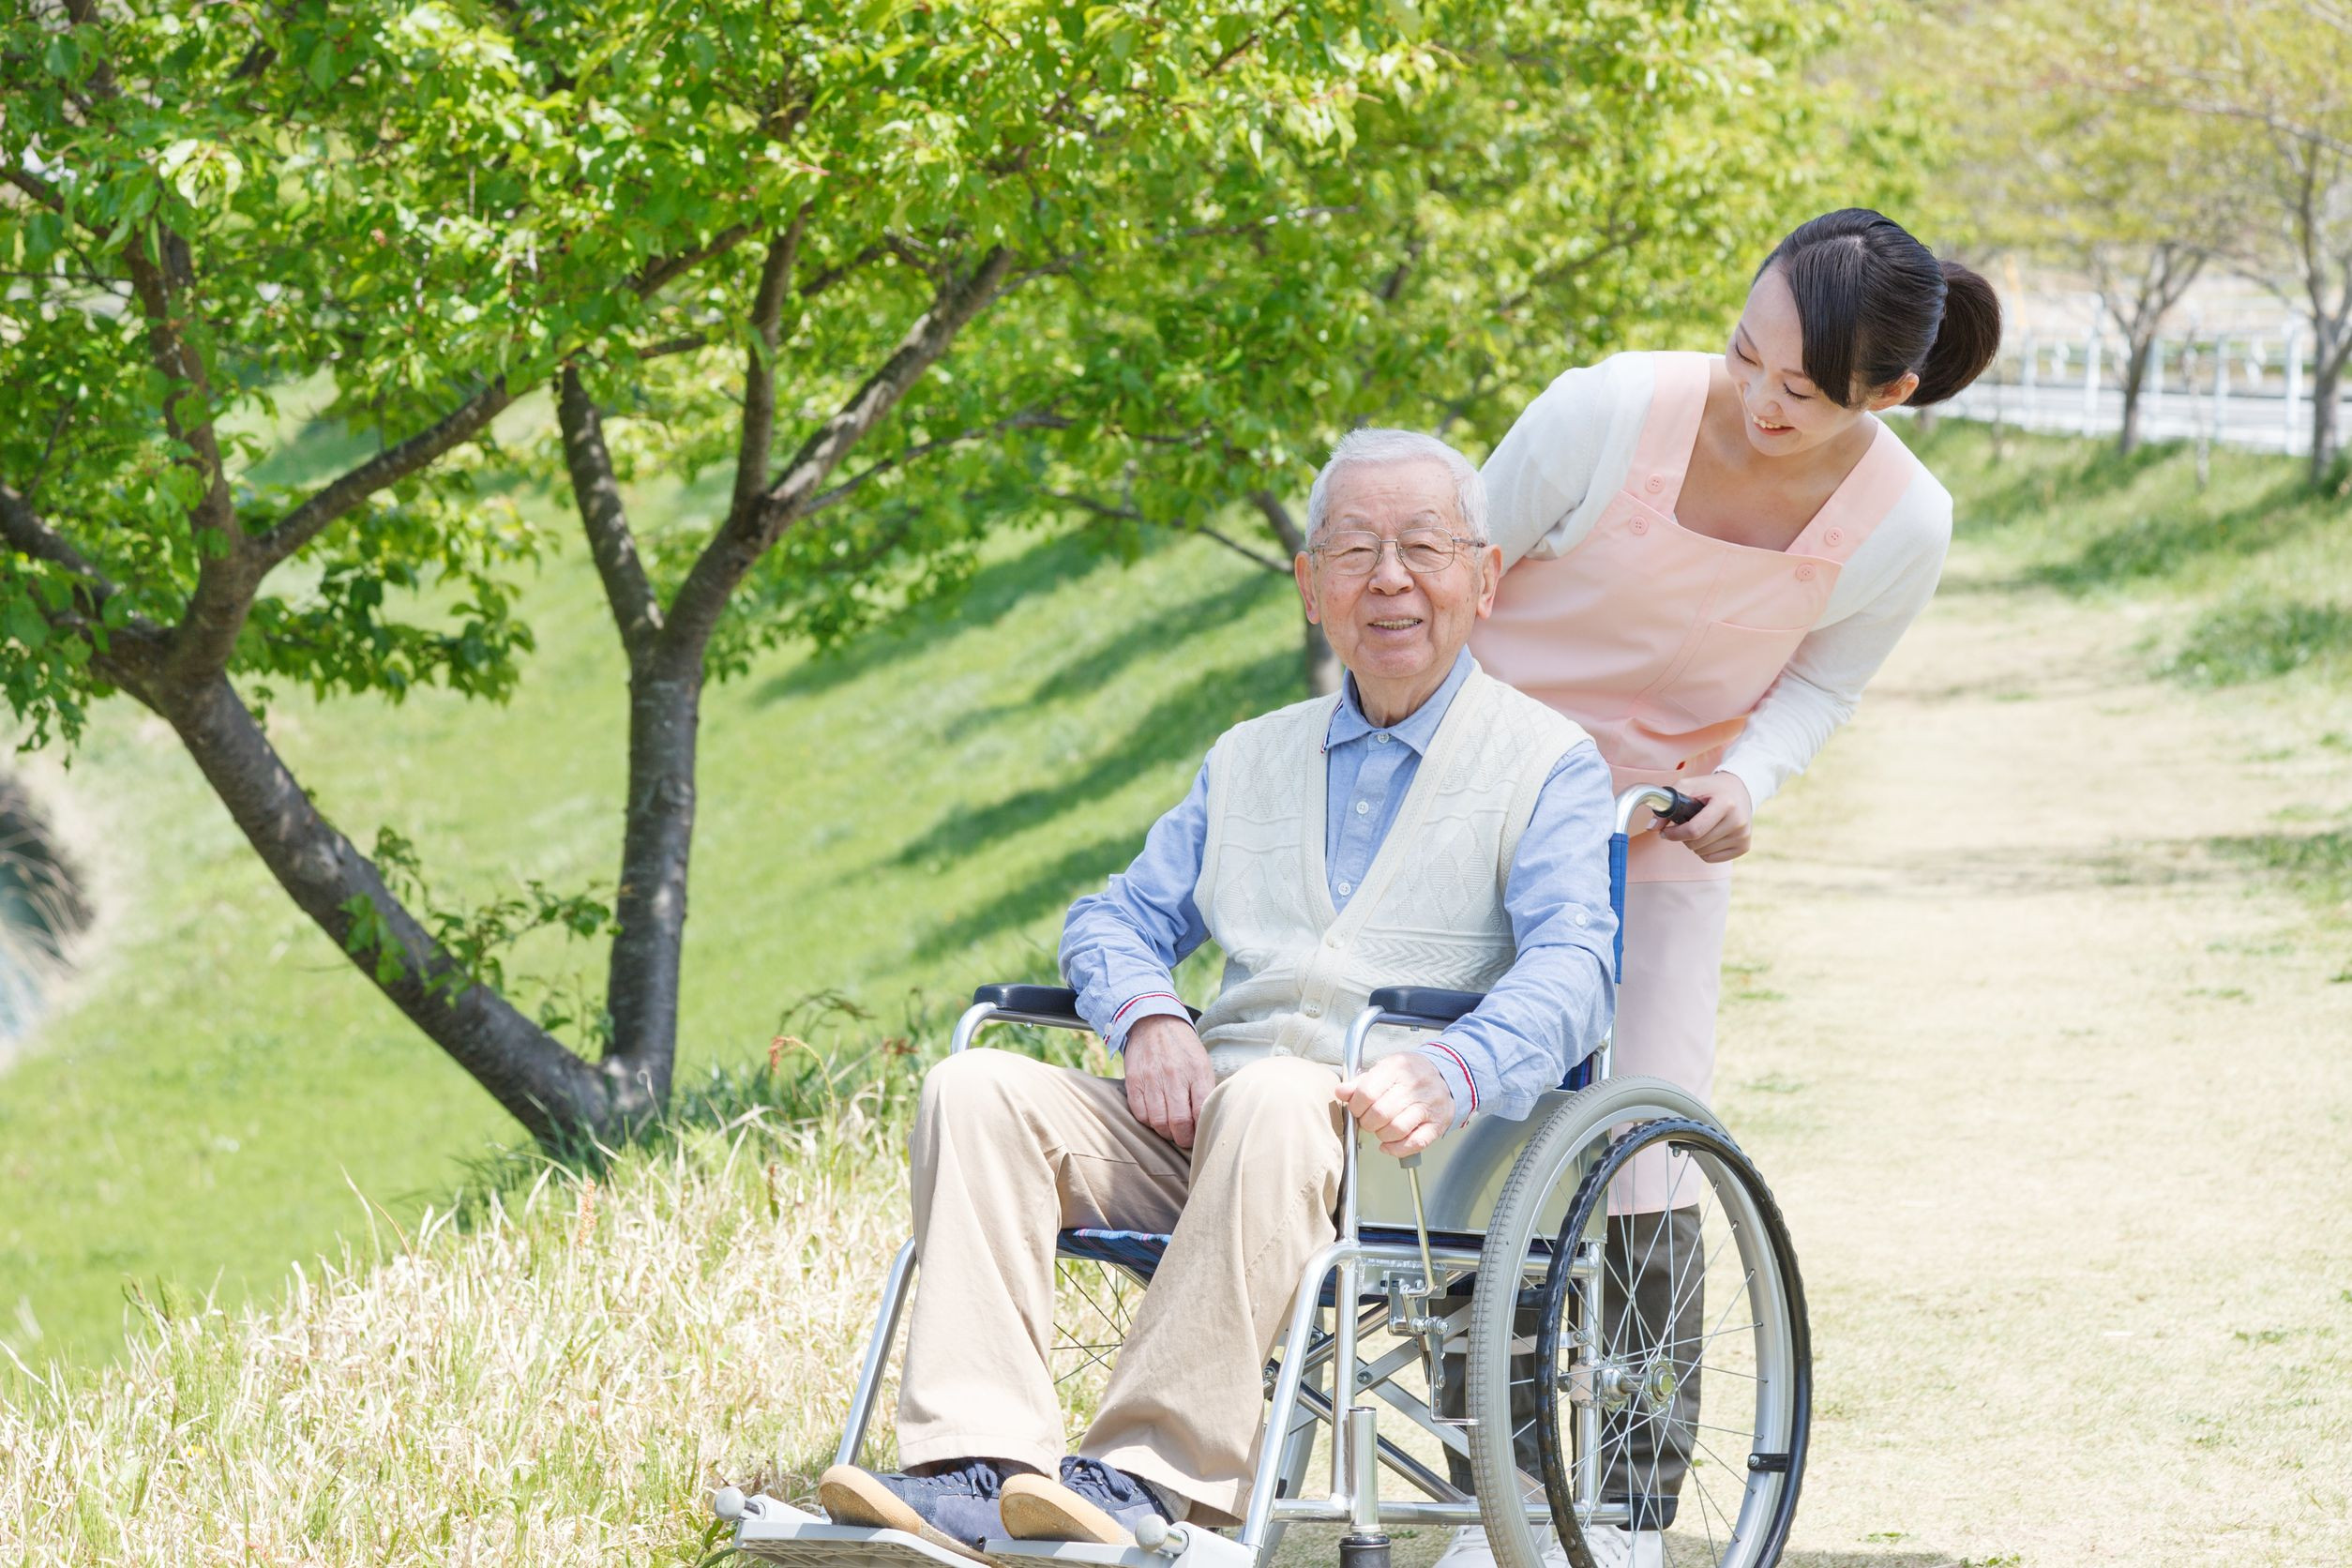 Prior Written Notice Must be Given Before Leaving an Elderly or Handicapped Employer